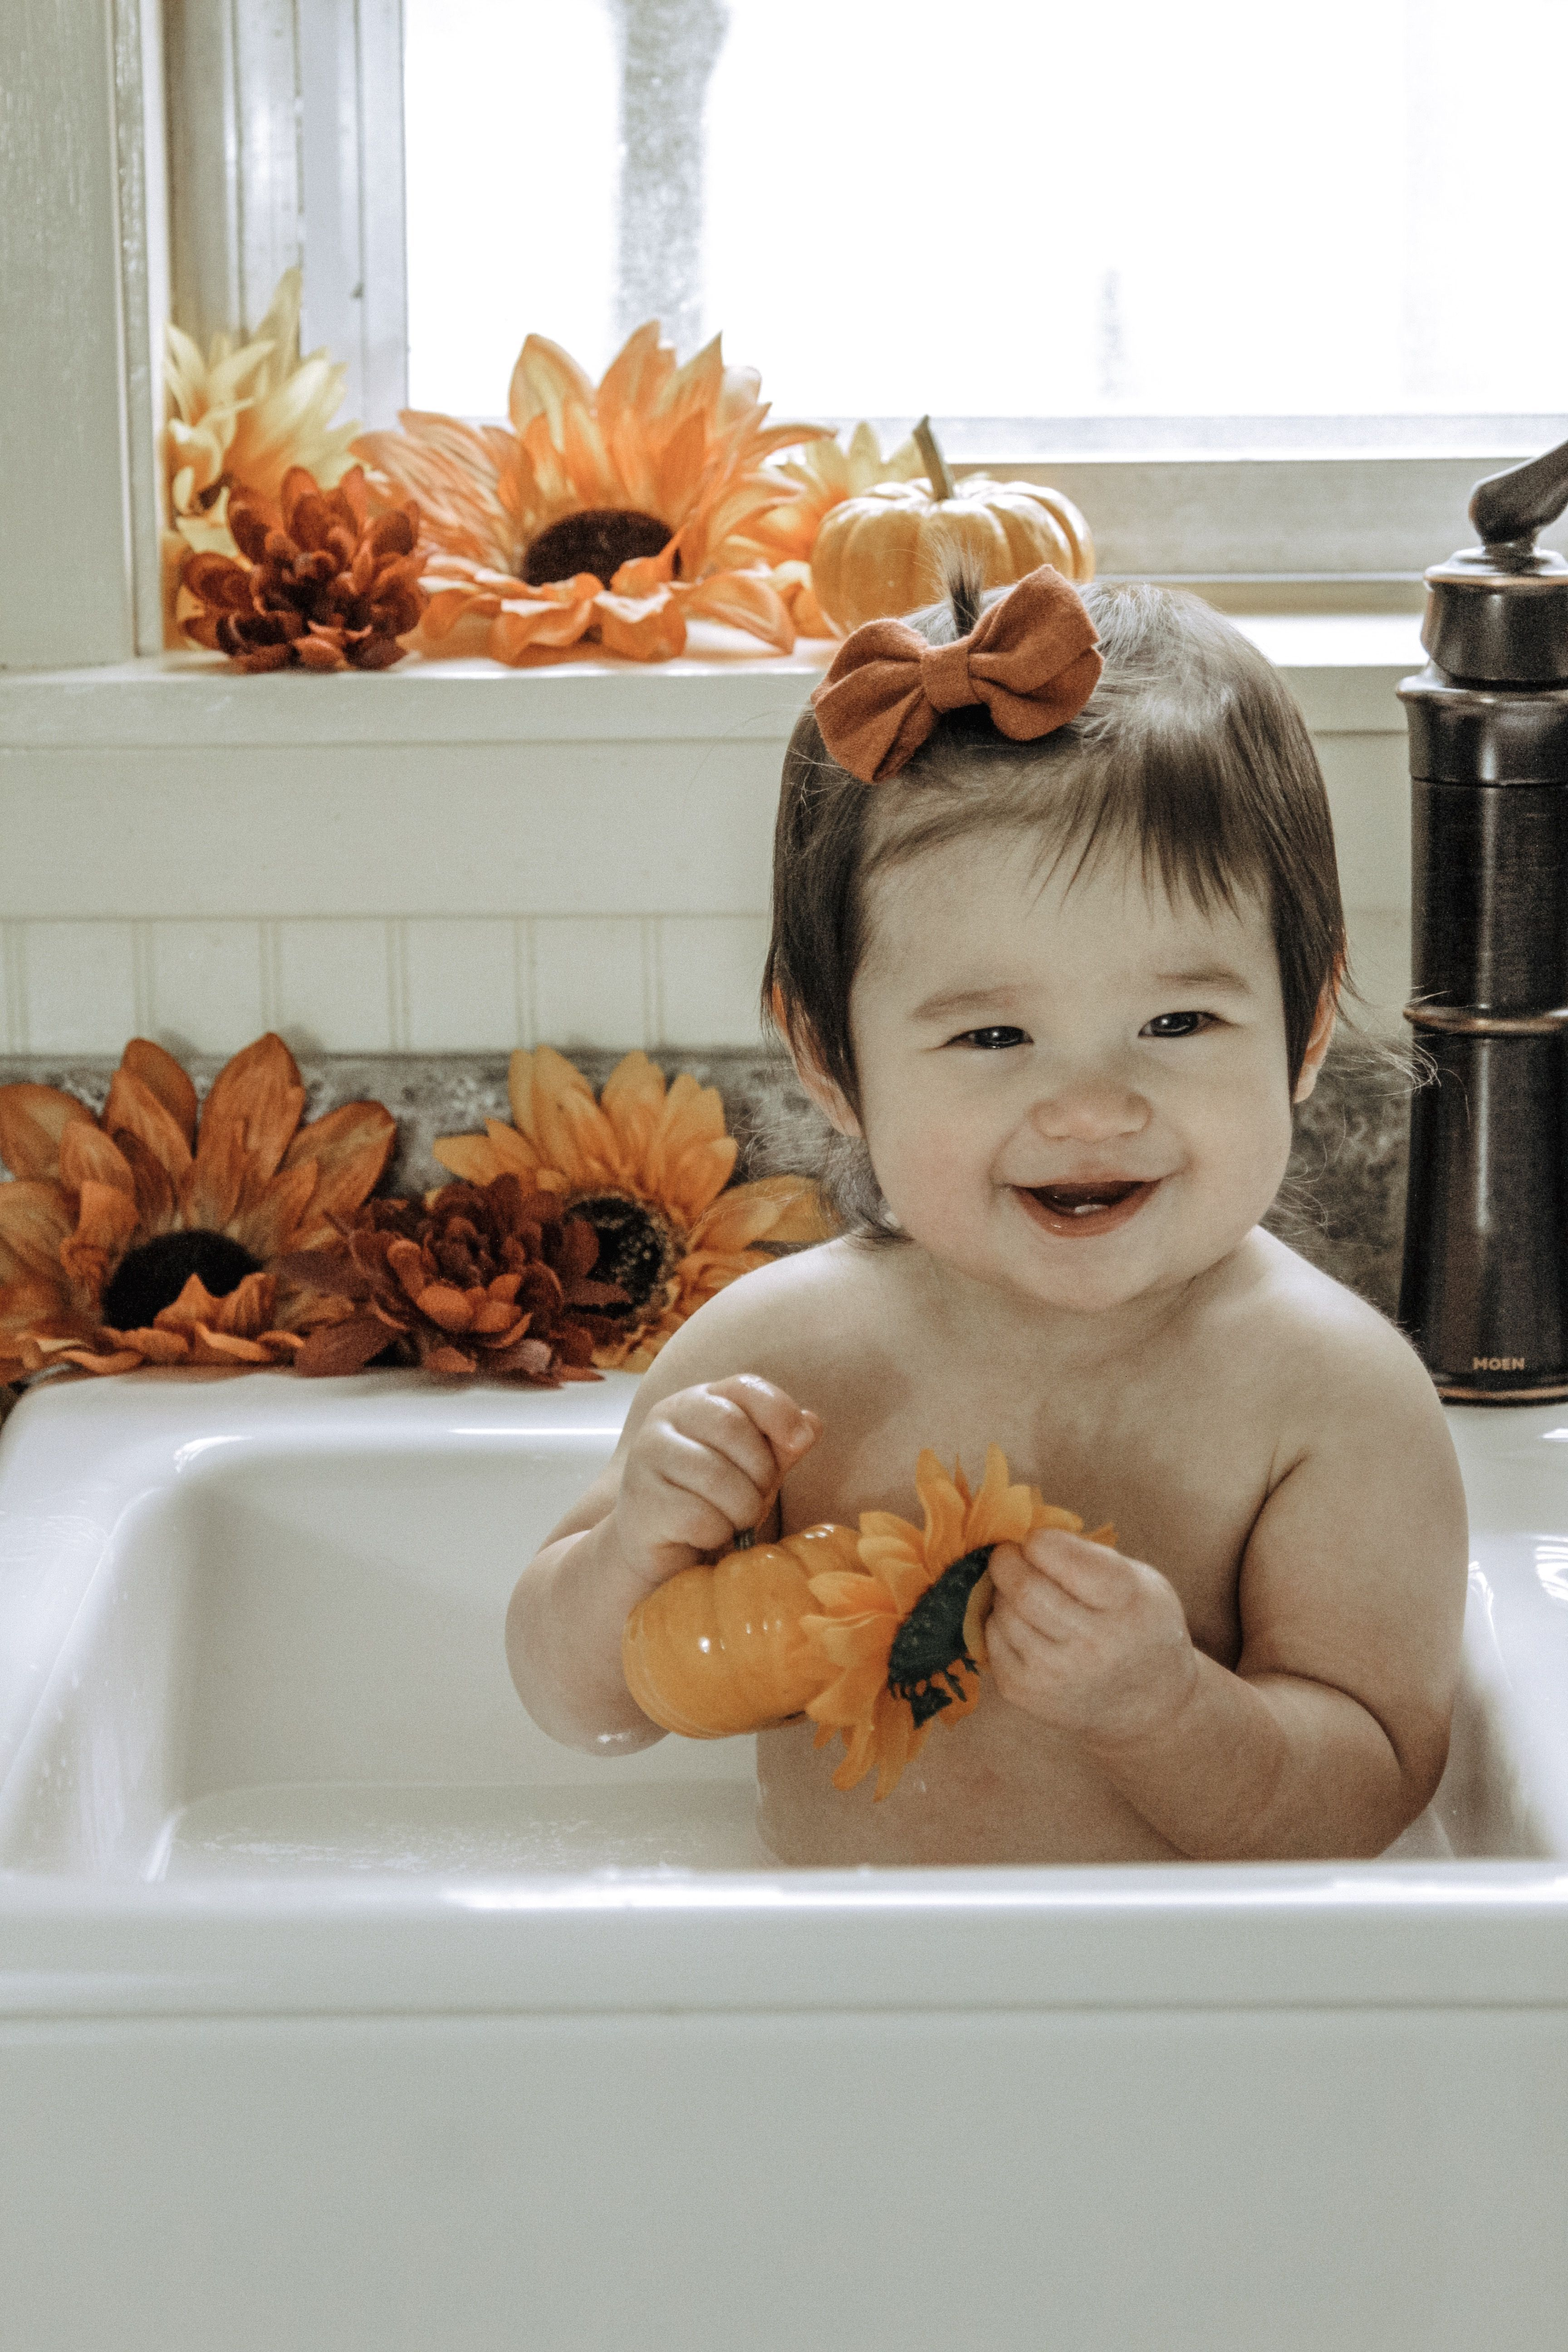 Fall Milk Bath #fallmilkbathbaby Fall and Pumpkin Farm Sink Milk Bath #fallmilkbath